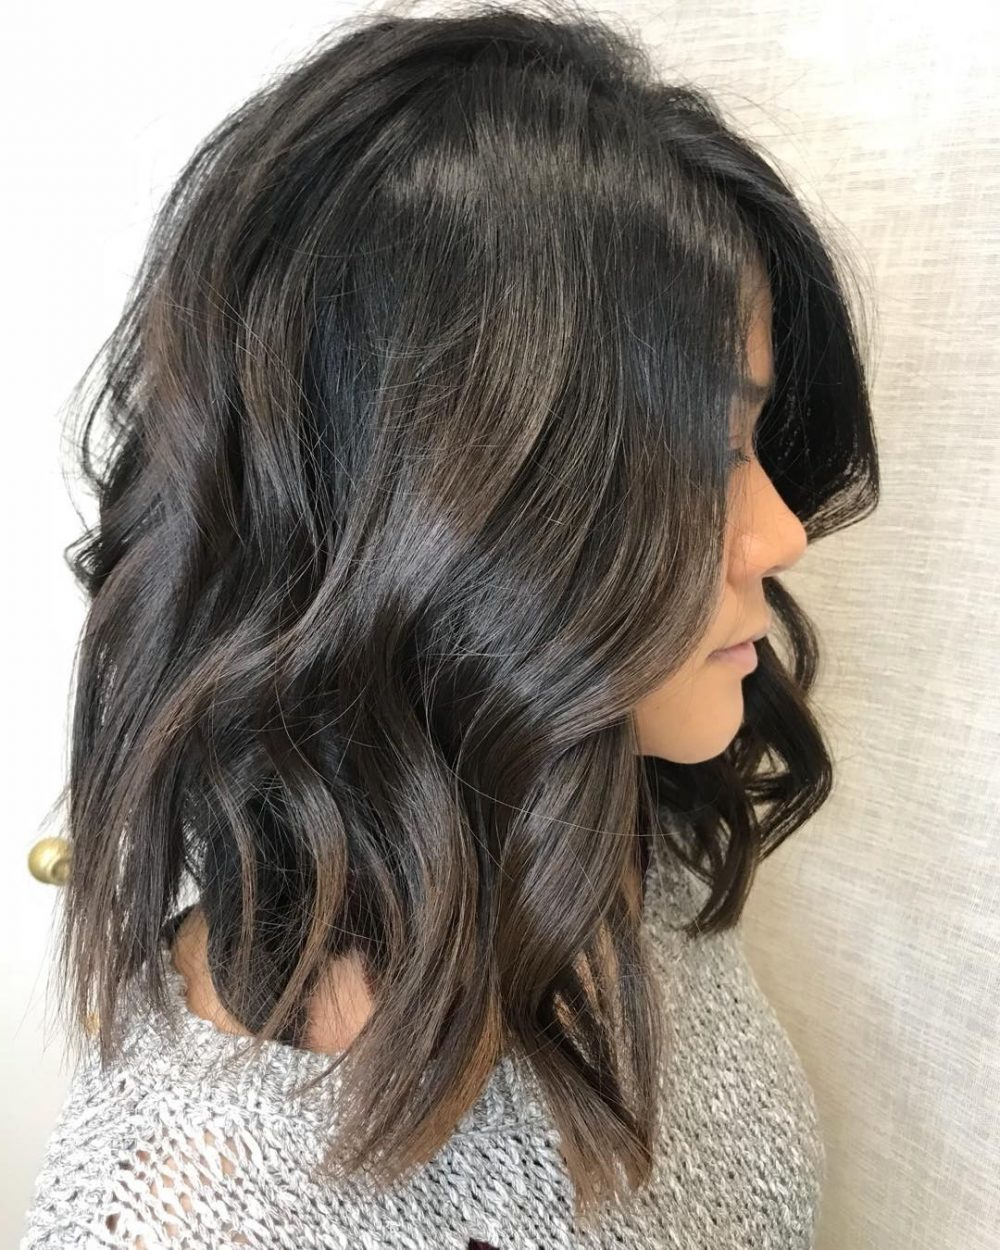 2018 Collarbone Bob Haircuts For 40 Gorgeous And Easy Medium To Shoulder Length Bob Haircuts (View 3 of 20)